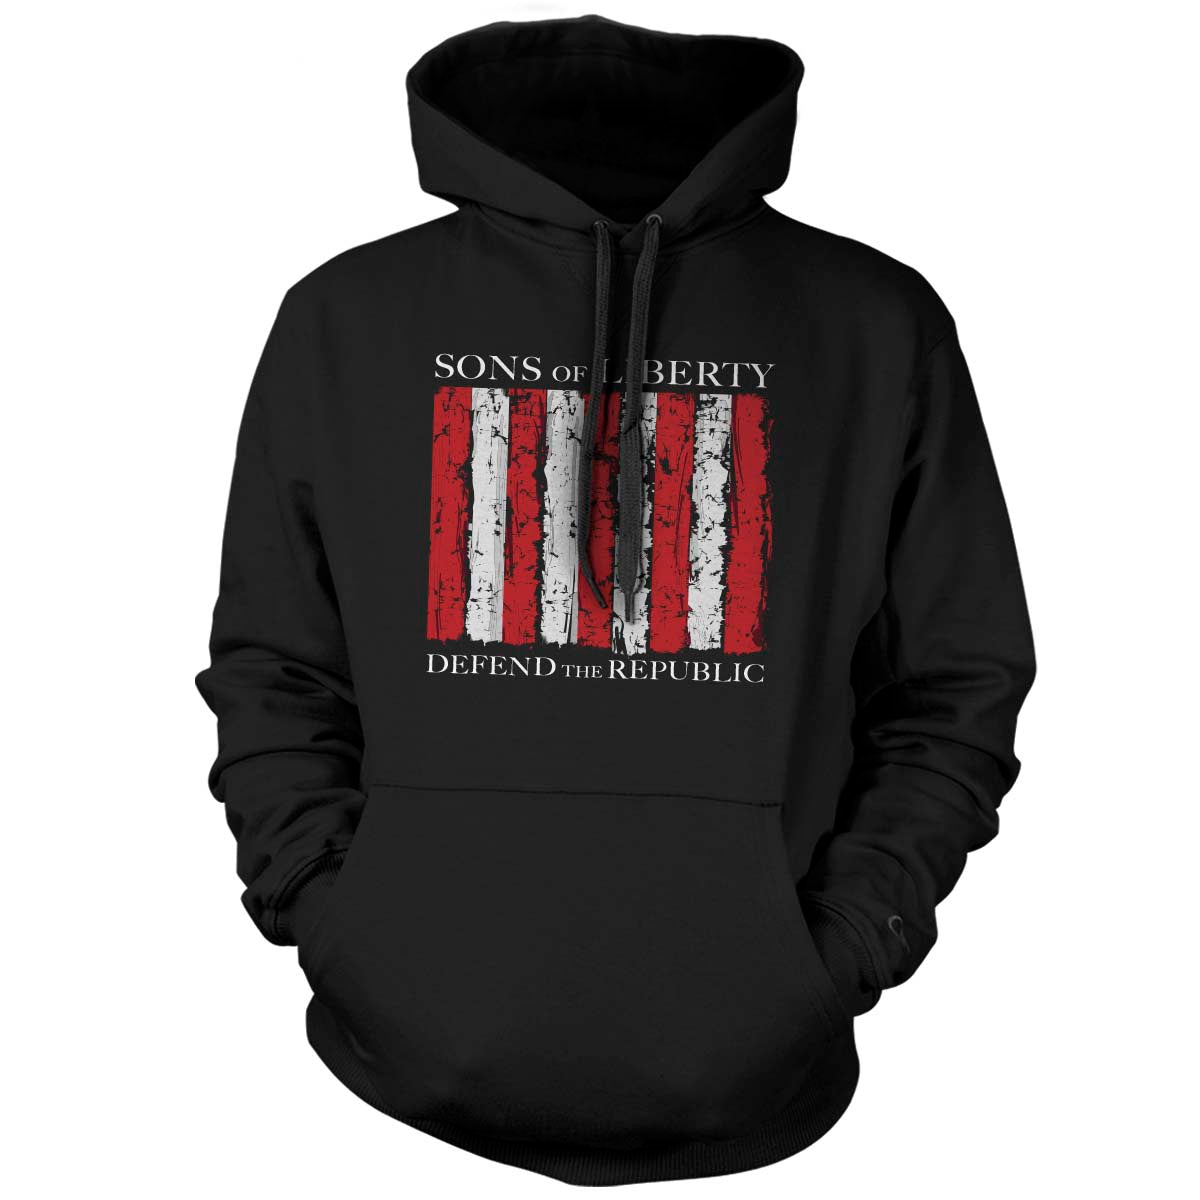 Sons of Liberty - Defend the Republic - Hoodie - Black - T-Shirts - Pipe Hitters Union